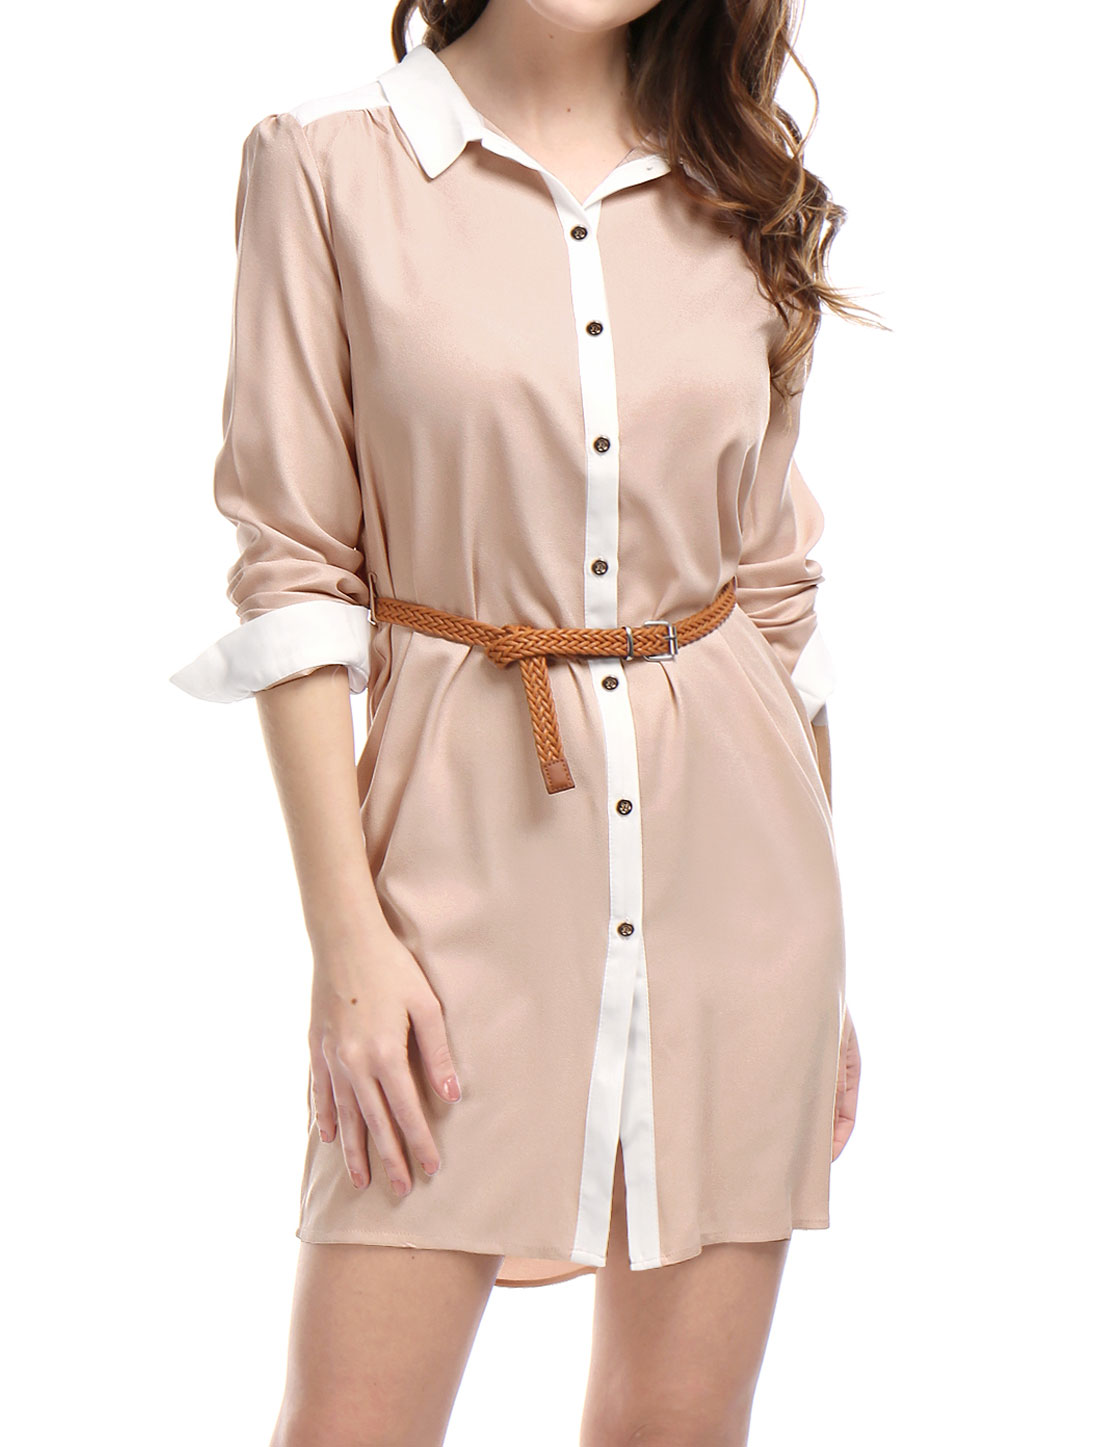 Women Contrast Color Long Sleeves Above Knee Belted Shirt Dress Pink XL